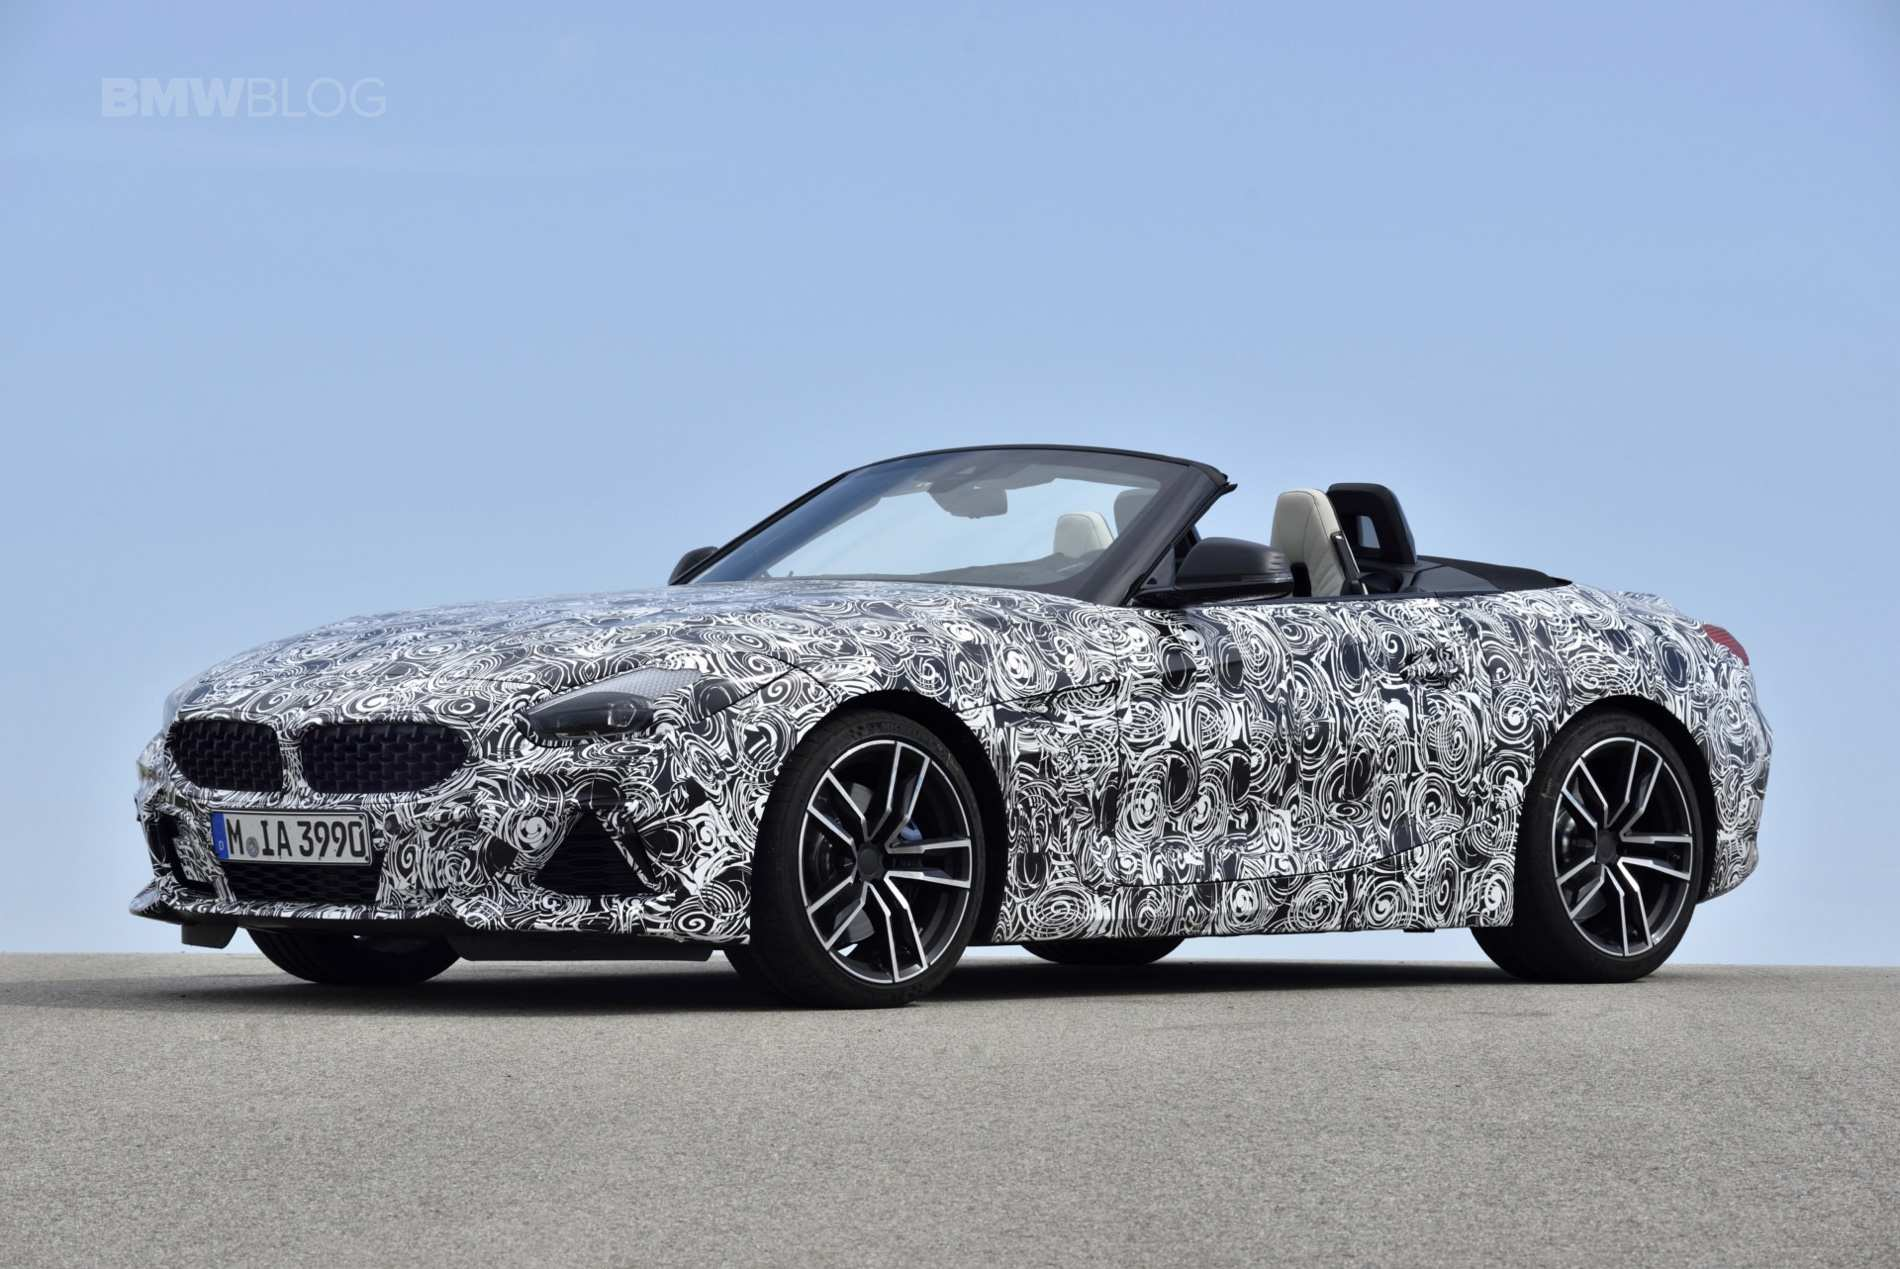 43 All New BMW Roadster 2020 Release Date by BMW Roadster 2020